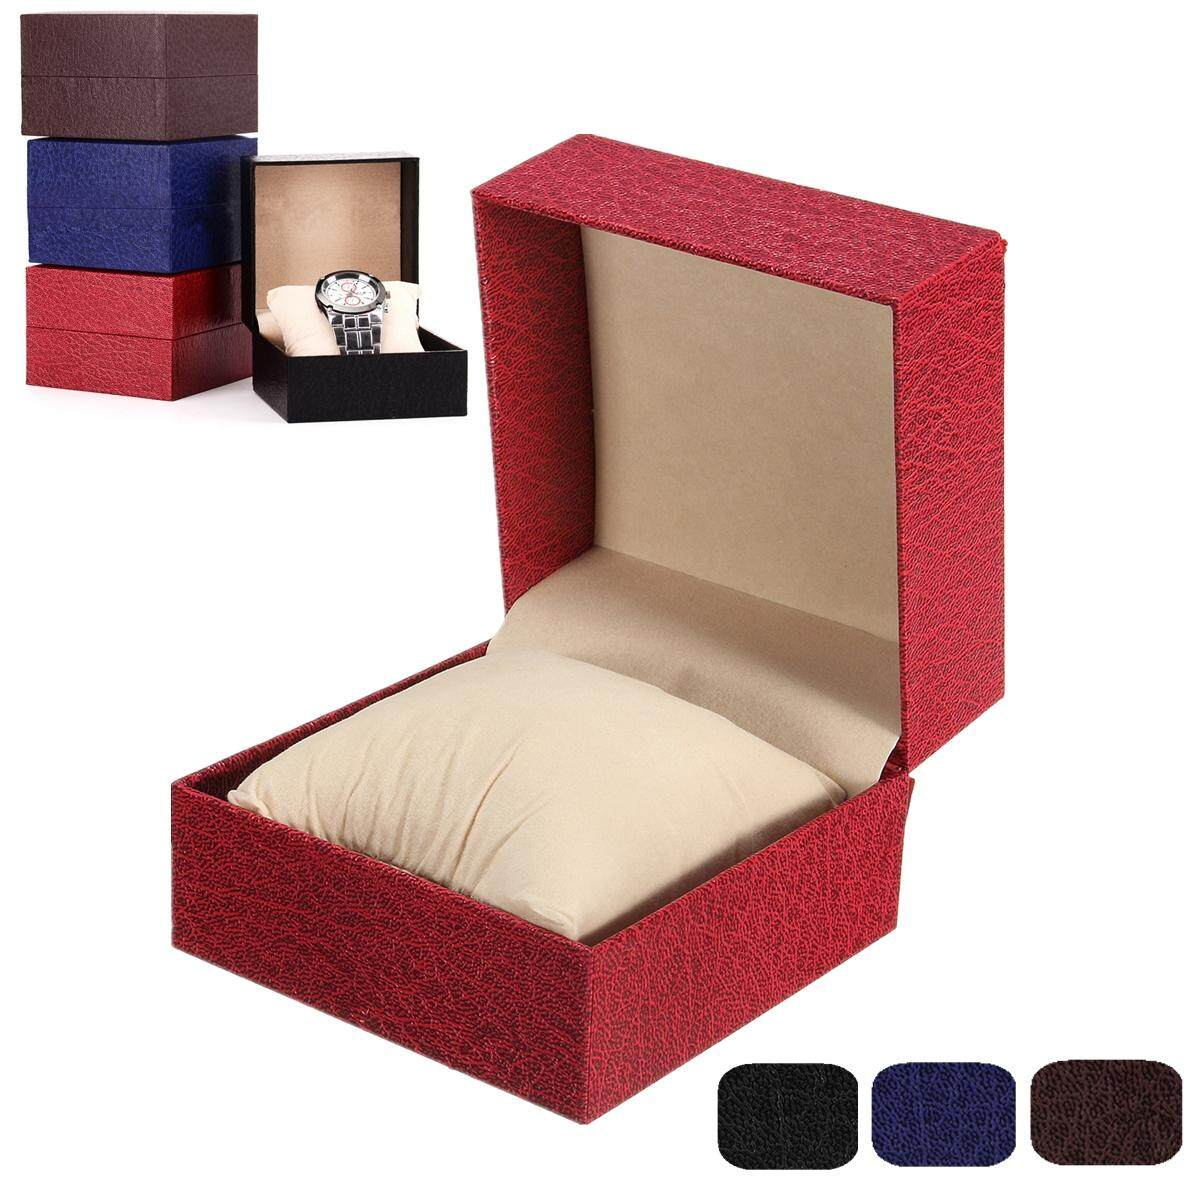 1 Grid Slot Watch Jewelry Display Box Case Organizer Holder Storage Gift 4 Color Red Malaysia